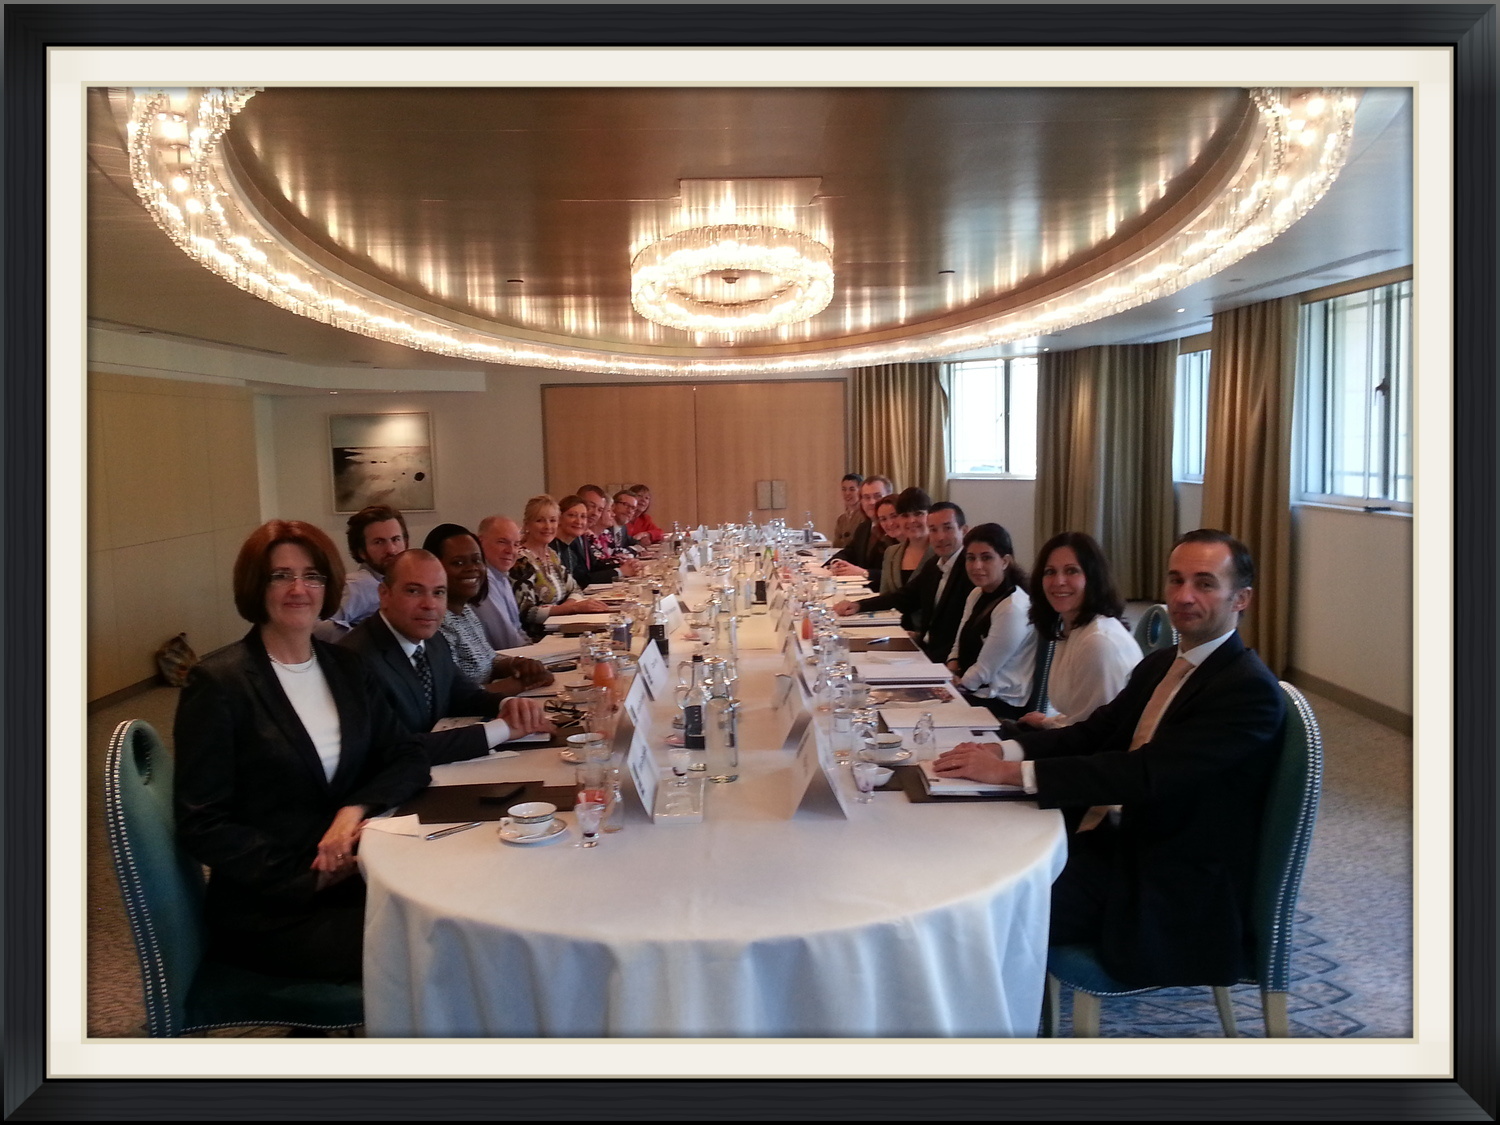 GWTC Roundtable in London, United Kingdom